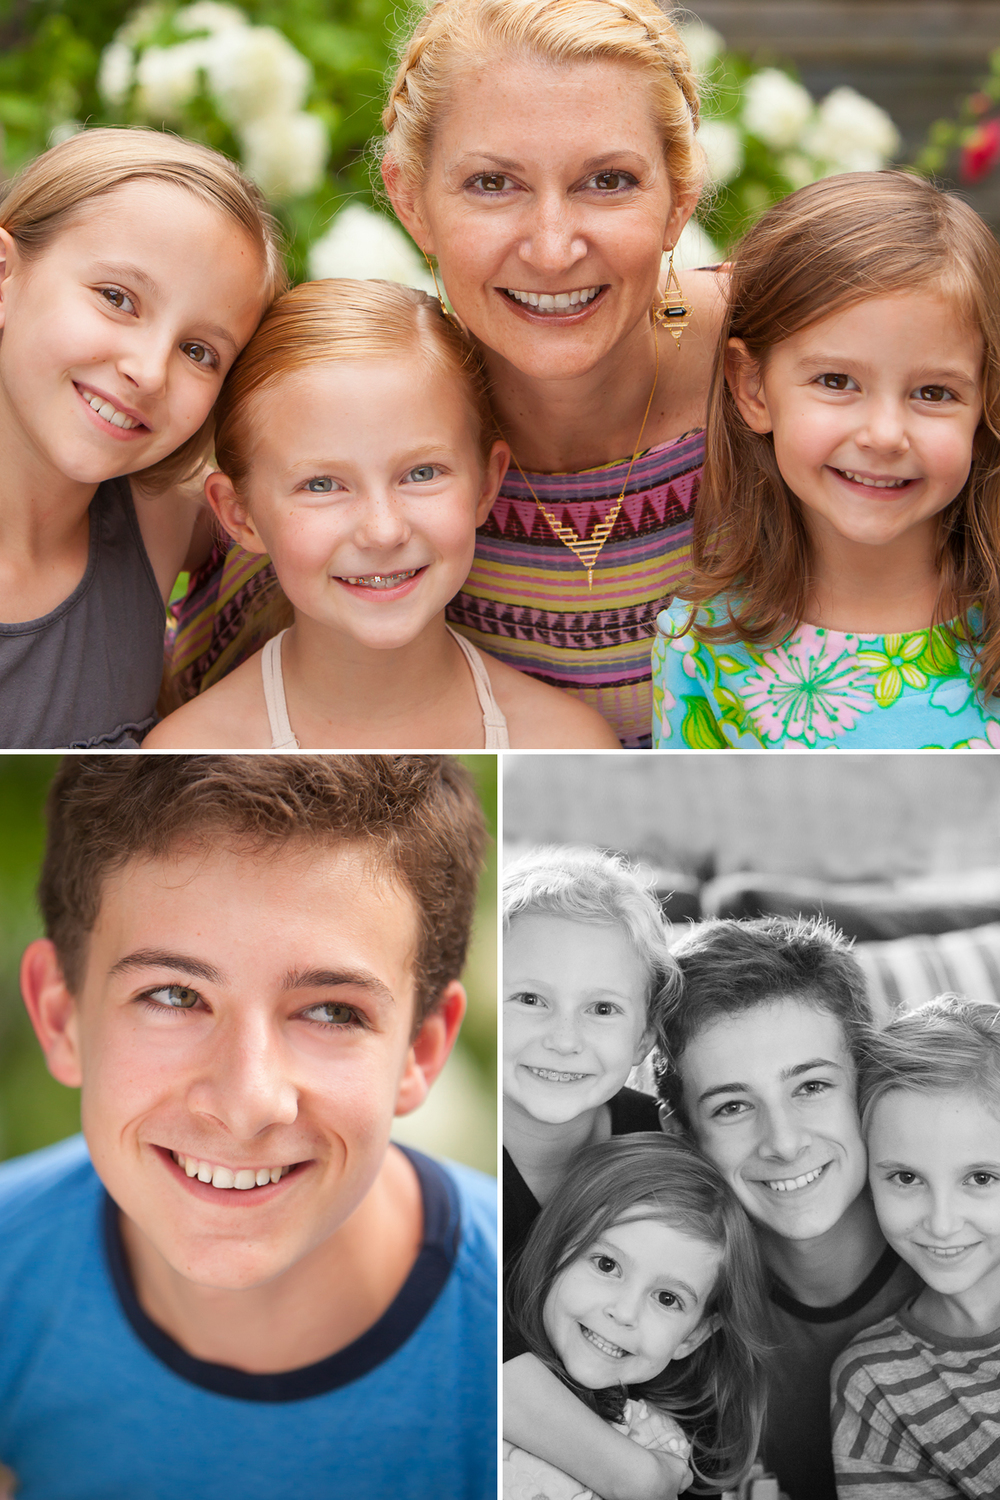 Denver Portrait + Family Photographer | Jennifer Koskinen | merrittportraitstudio.com